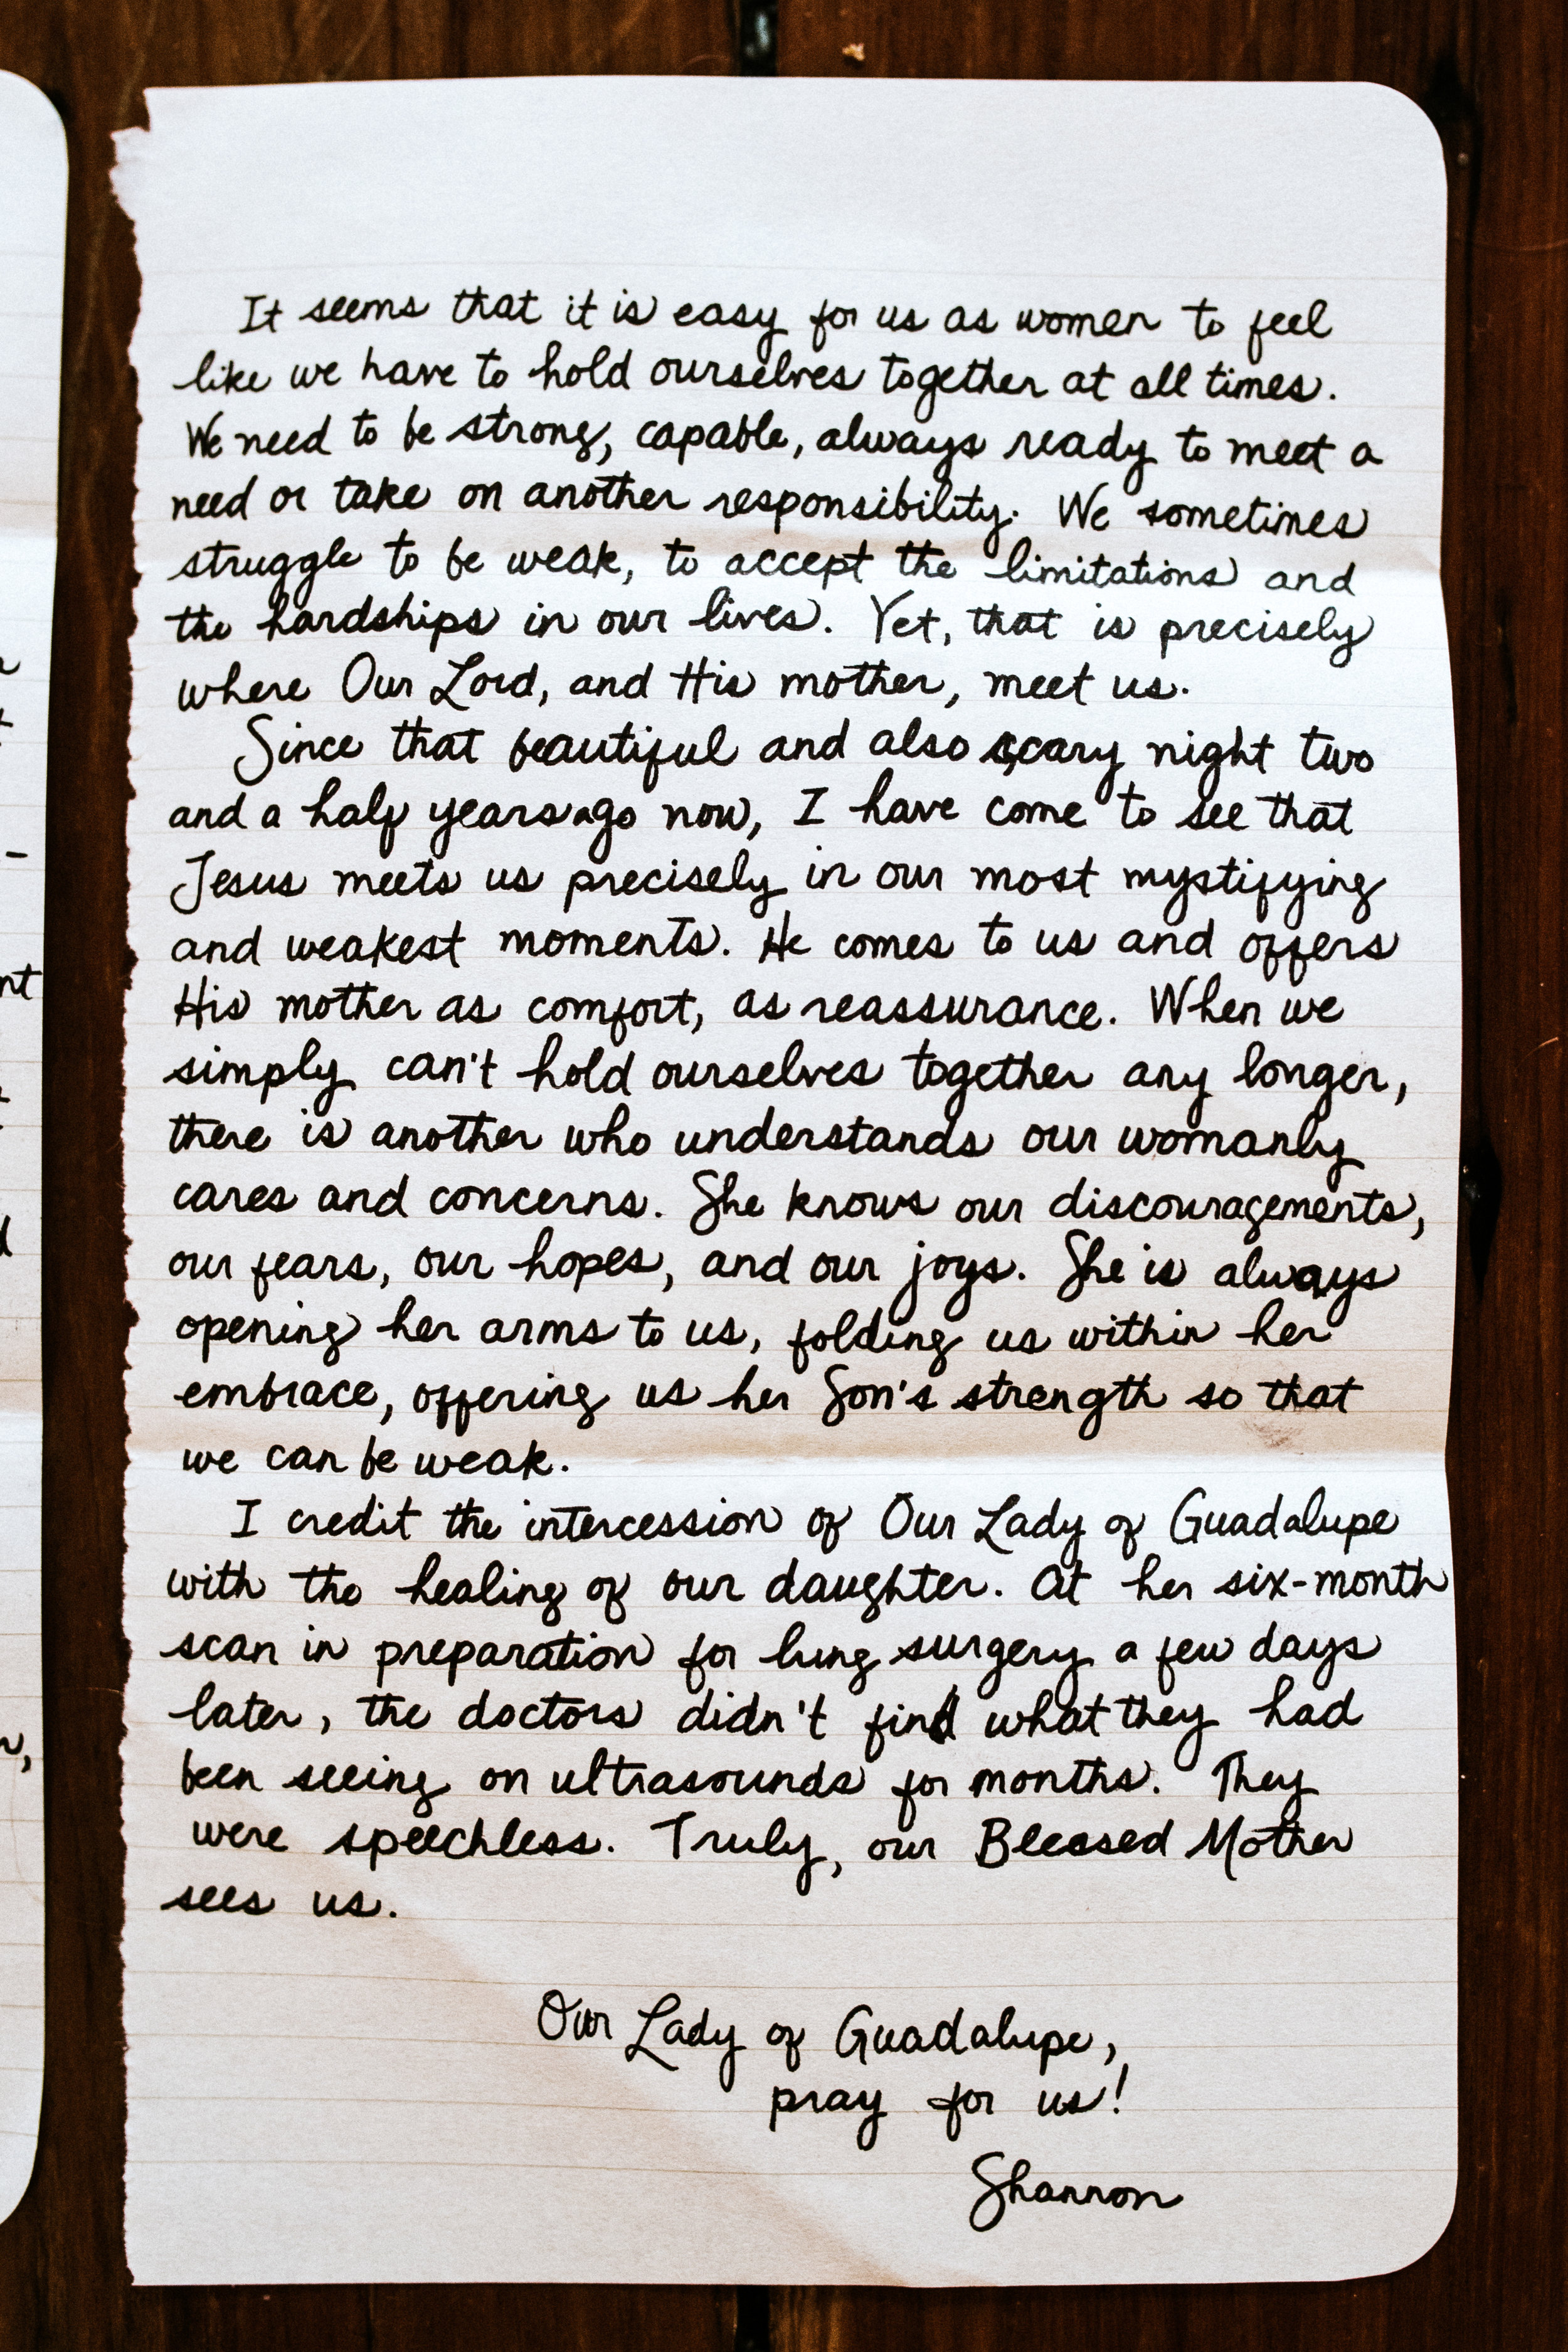 Shannon Lacy Letter to Women The Catholic Woman 2